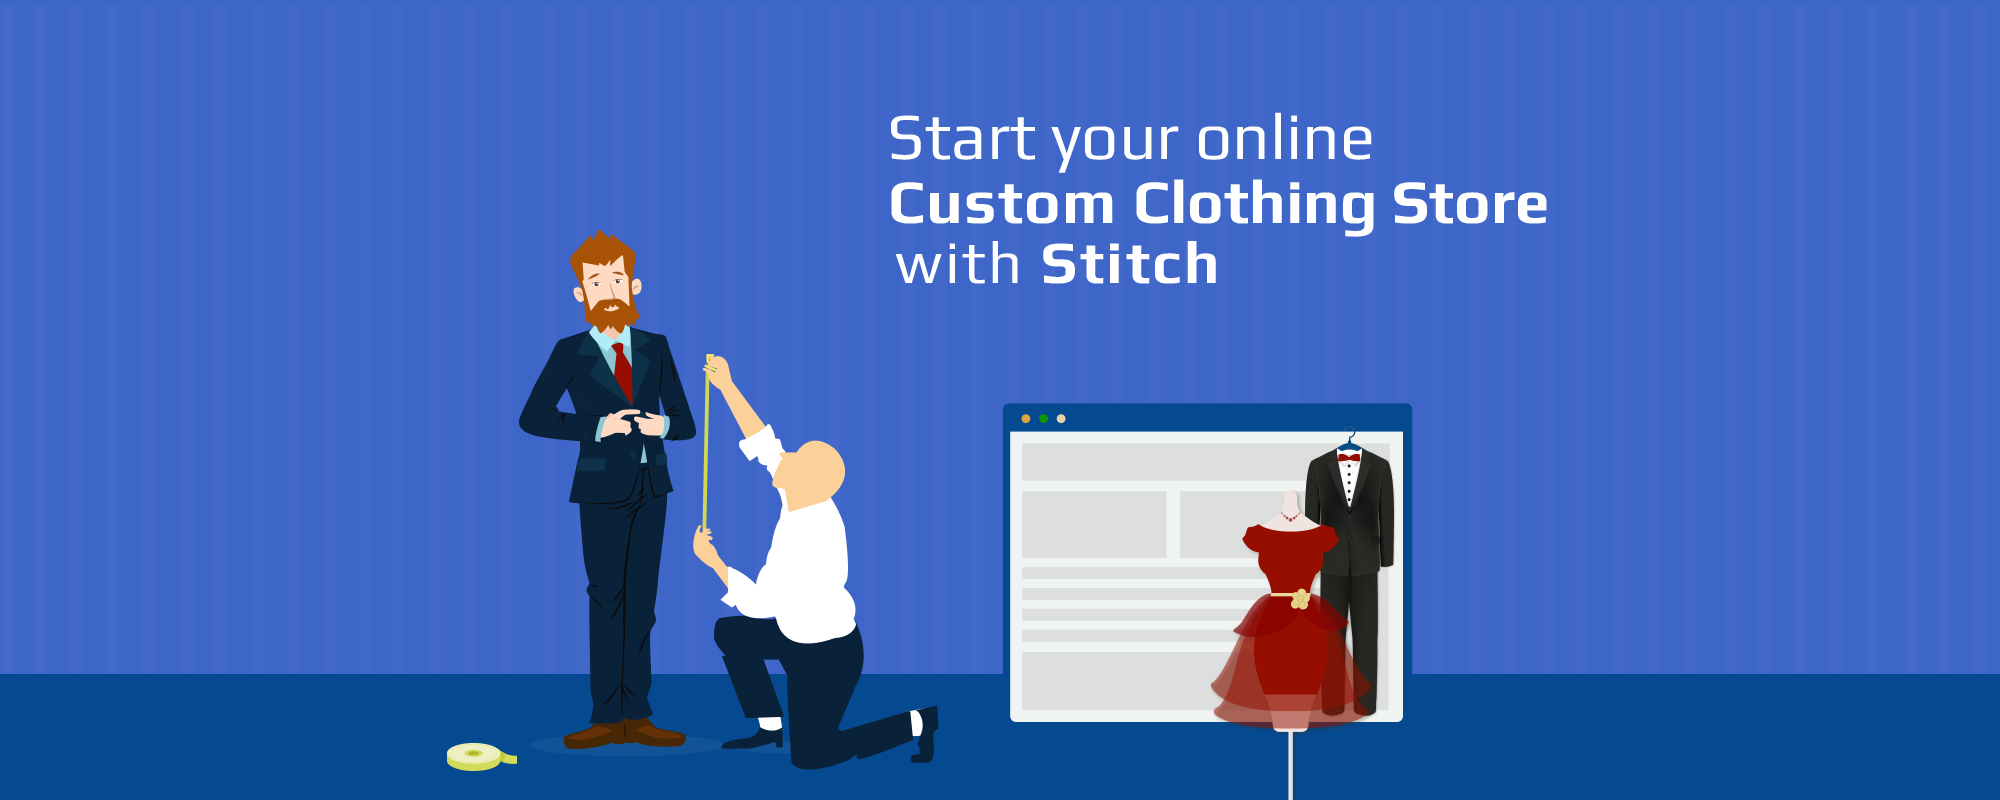 Why Stitch for Launching an Online Custom Clothing Store